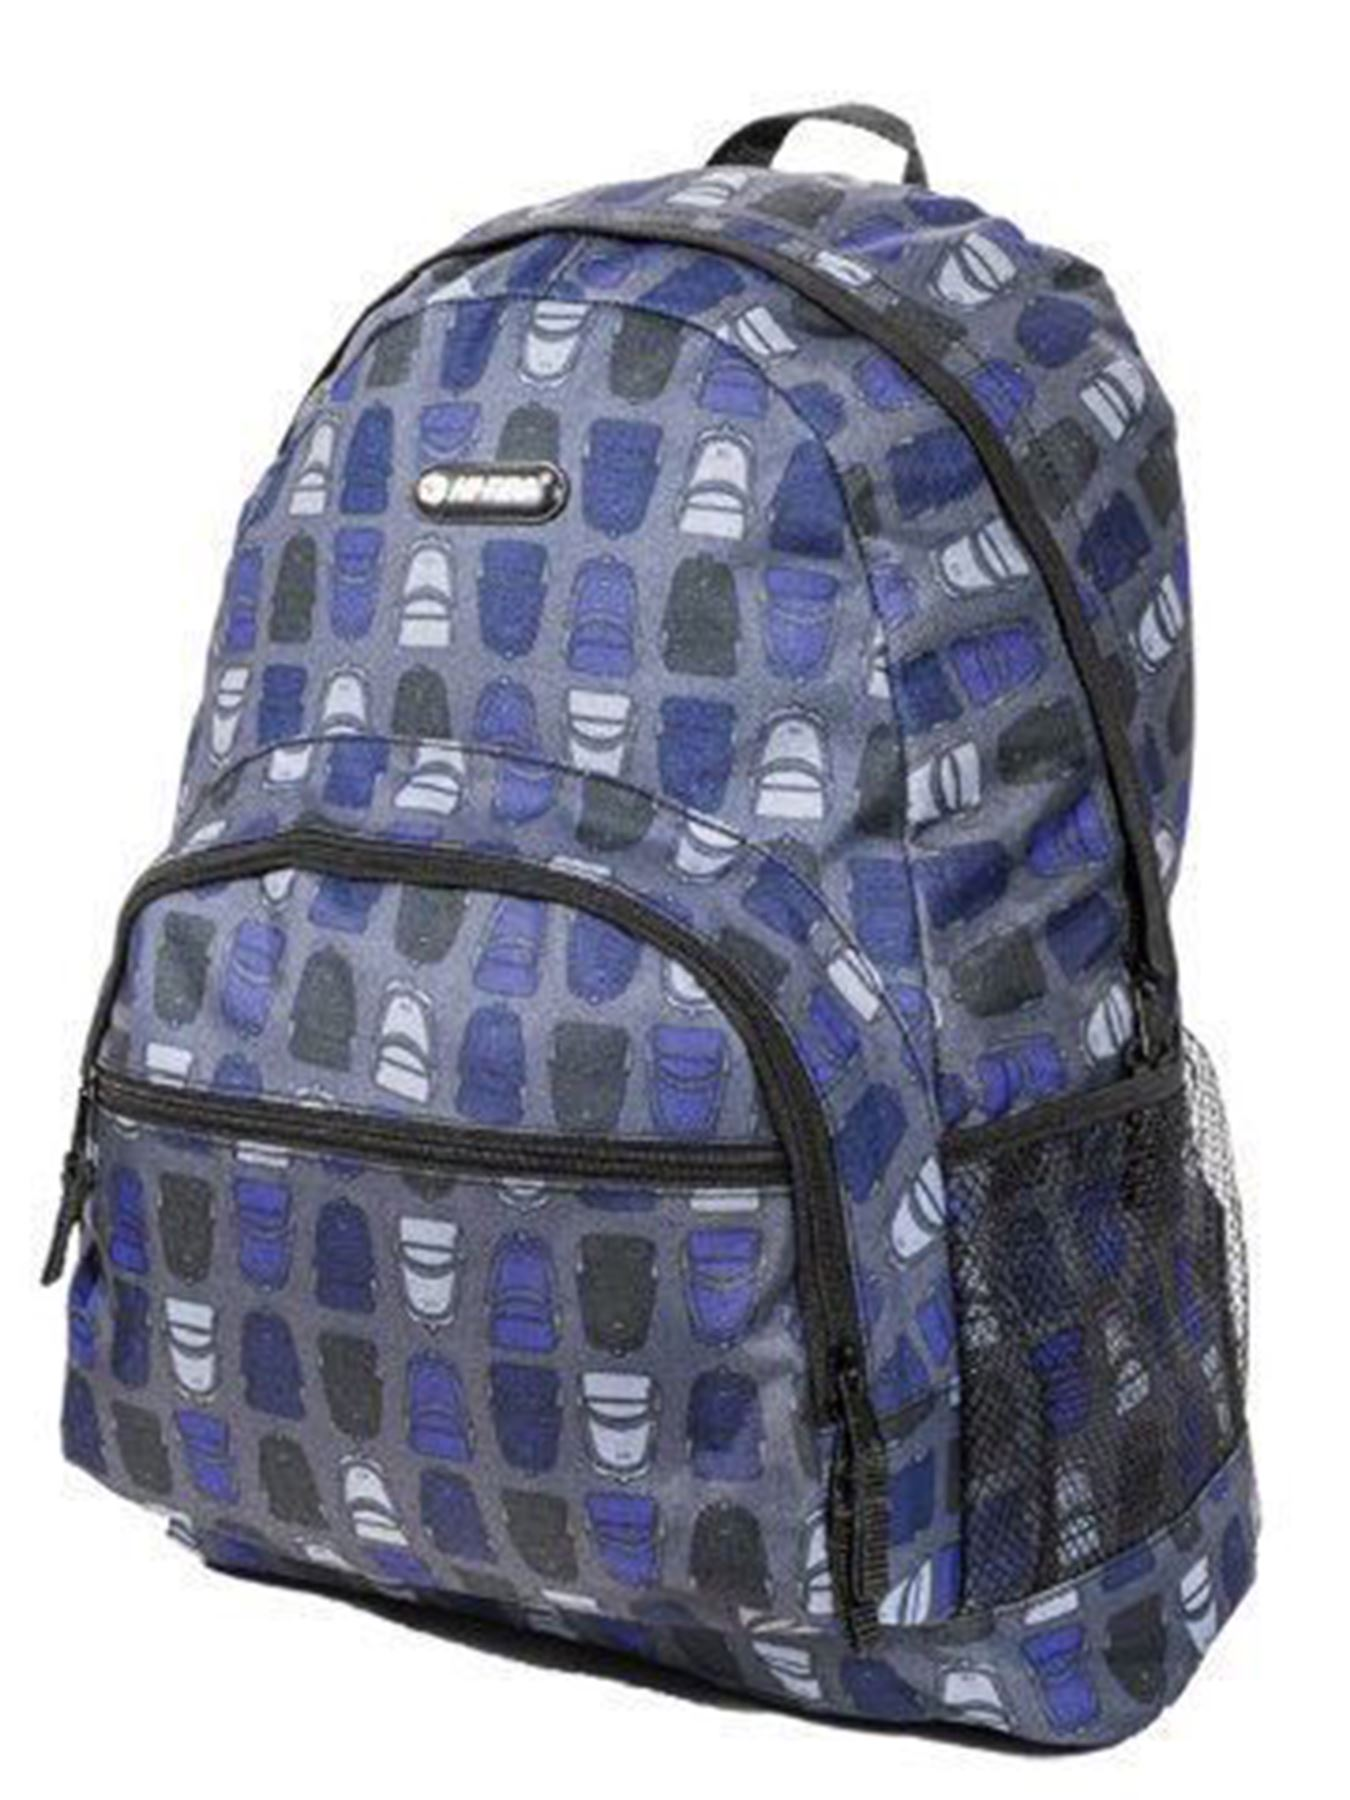 BNWT Women Girls HI-TEC Rucksack Travel Holiday Sports Gym School Bag Backpack